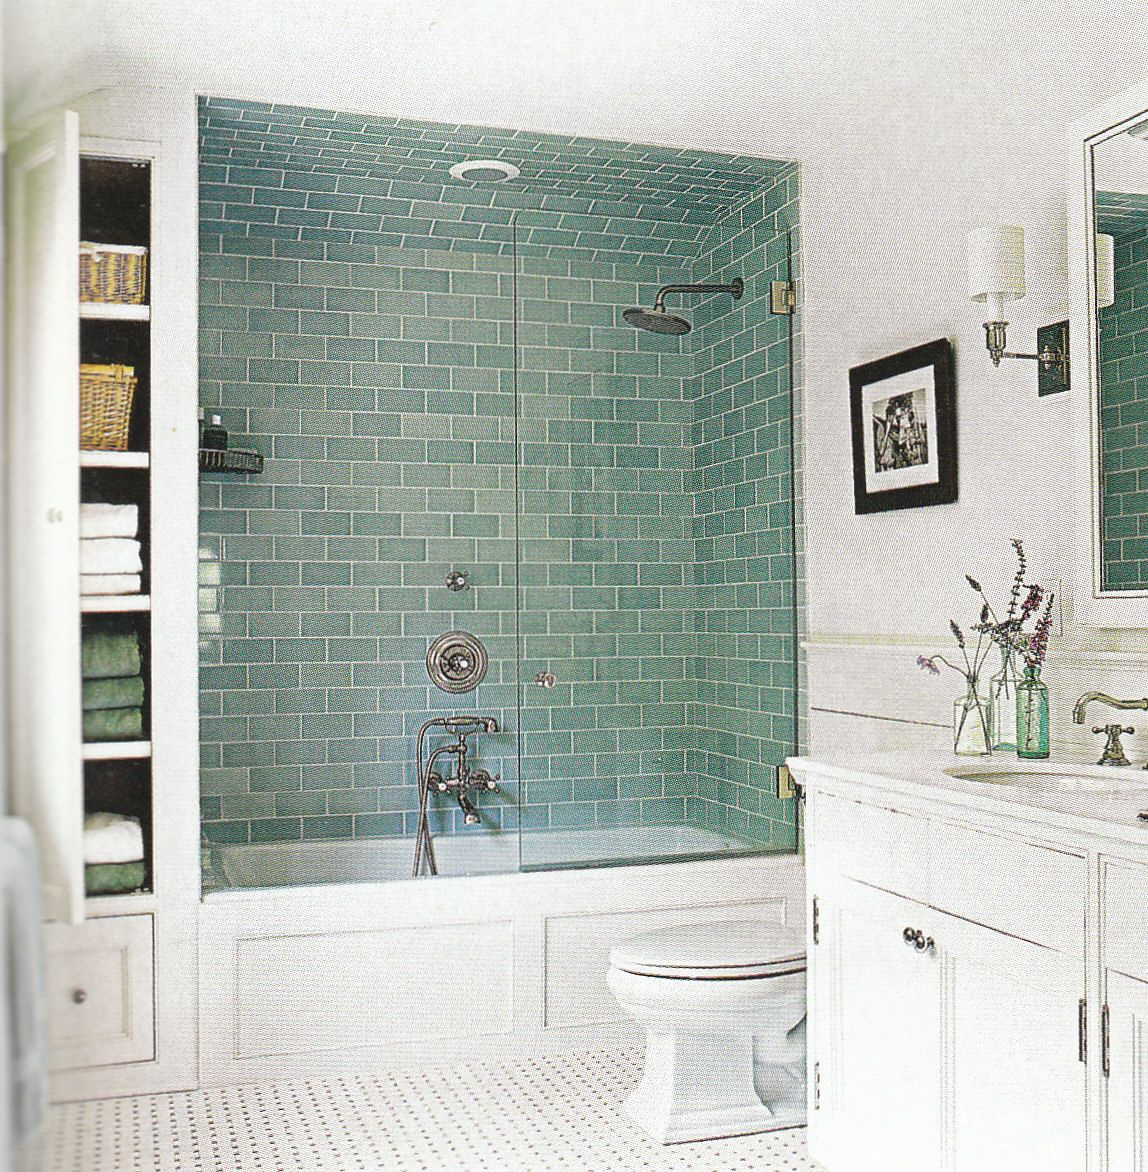 Frosted Sage Green Gl Subway Tile in 2019 | Bathroom tub ... on narrow bathroom sauna, narrow bathroom light, narrow bathroom countertop, narrow bathroom mirror, narrow bathroom sink, narrow bathroom window, narrow bathroom paint, narrow bathroom toilet, narrow bathroom floor, narrow fireplace, narrow bathroom vanity cabinet, narrow bathroom doors, narrow bathroom table, narrow bathroom skylight, narrow bathroom rug, narrow bathroom closet,